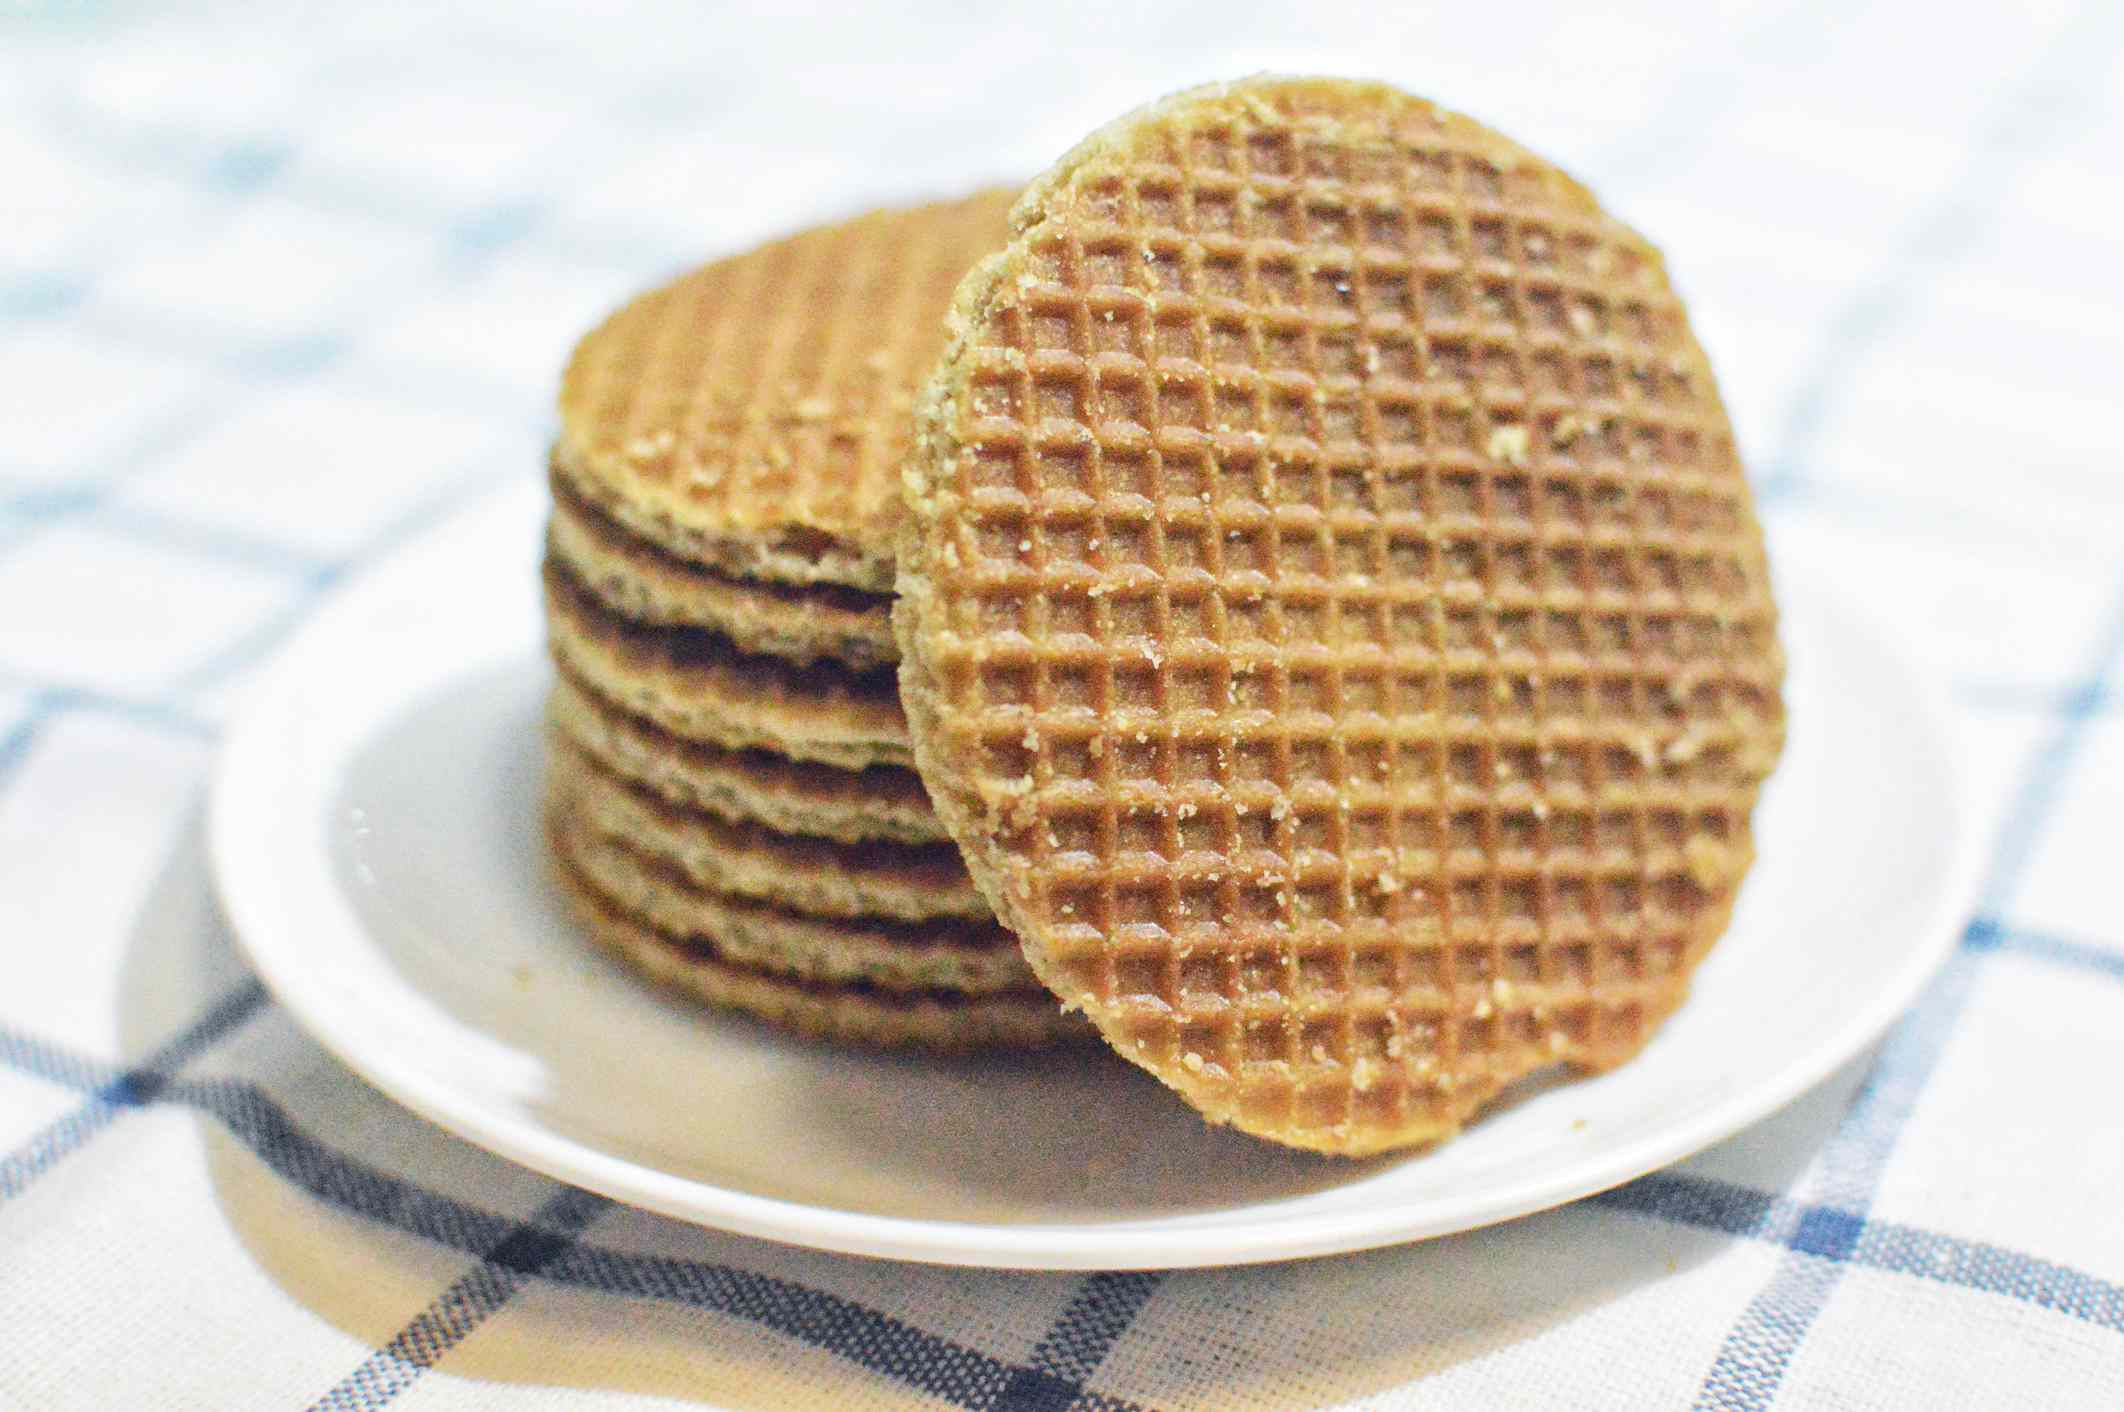 Stack of Dutch caramel waffles on a plate.